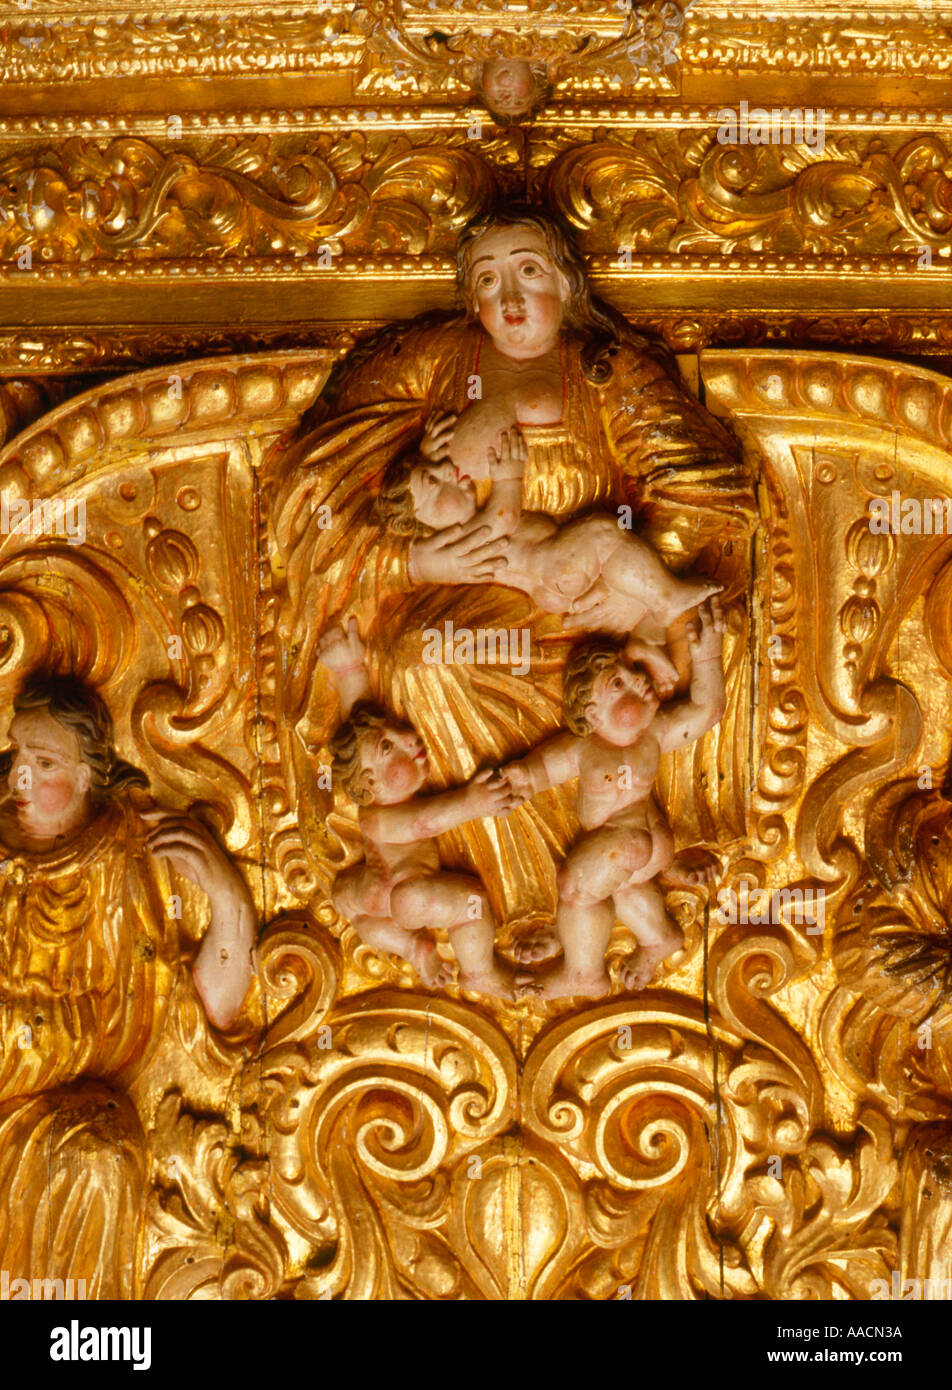 Baroque Carving Portugal - Stock Image